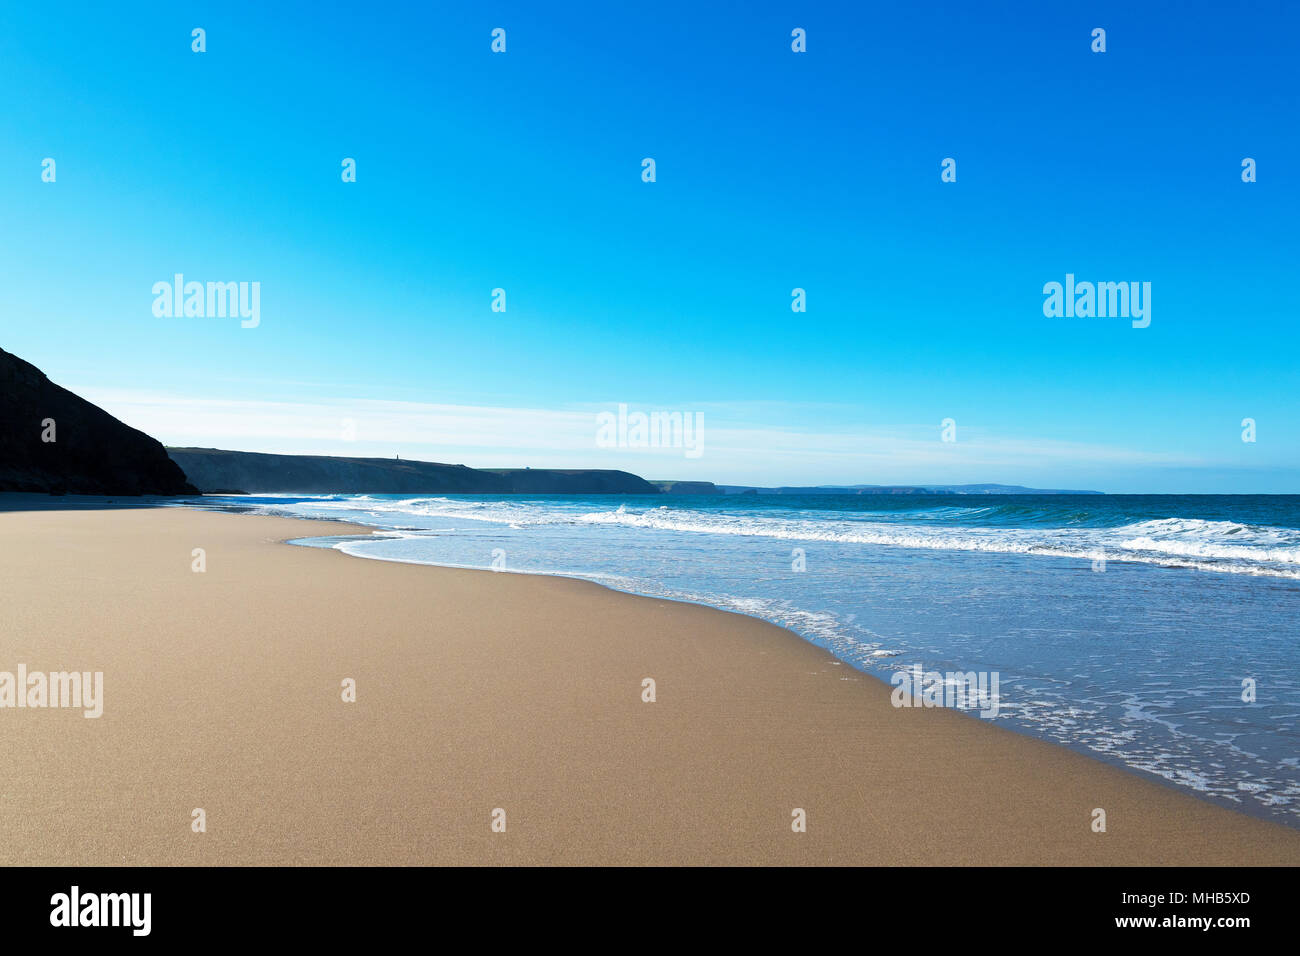 empty sandy beach at chapel porth, cornwall, england, britain, uk. - Stock Image